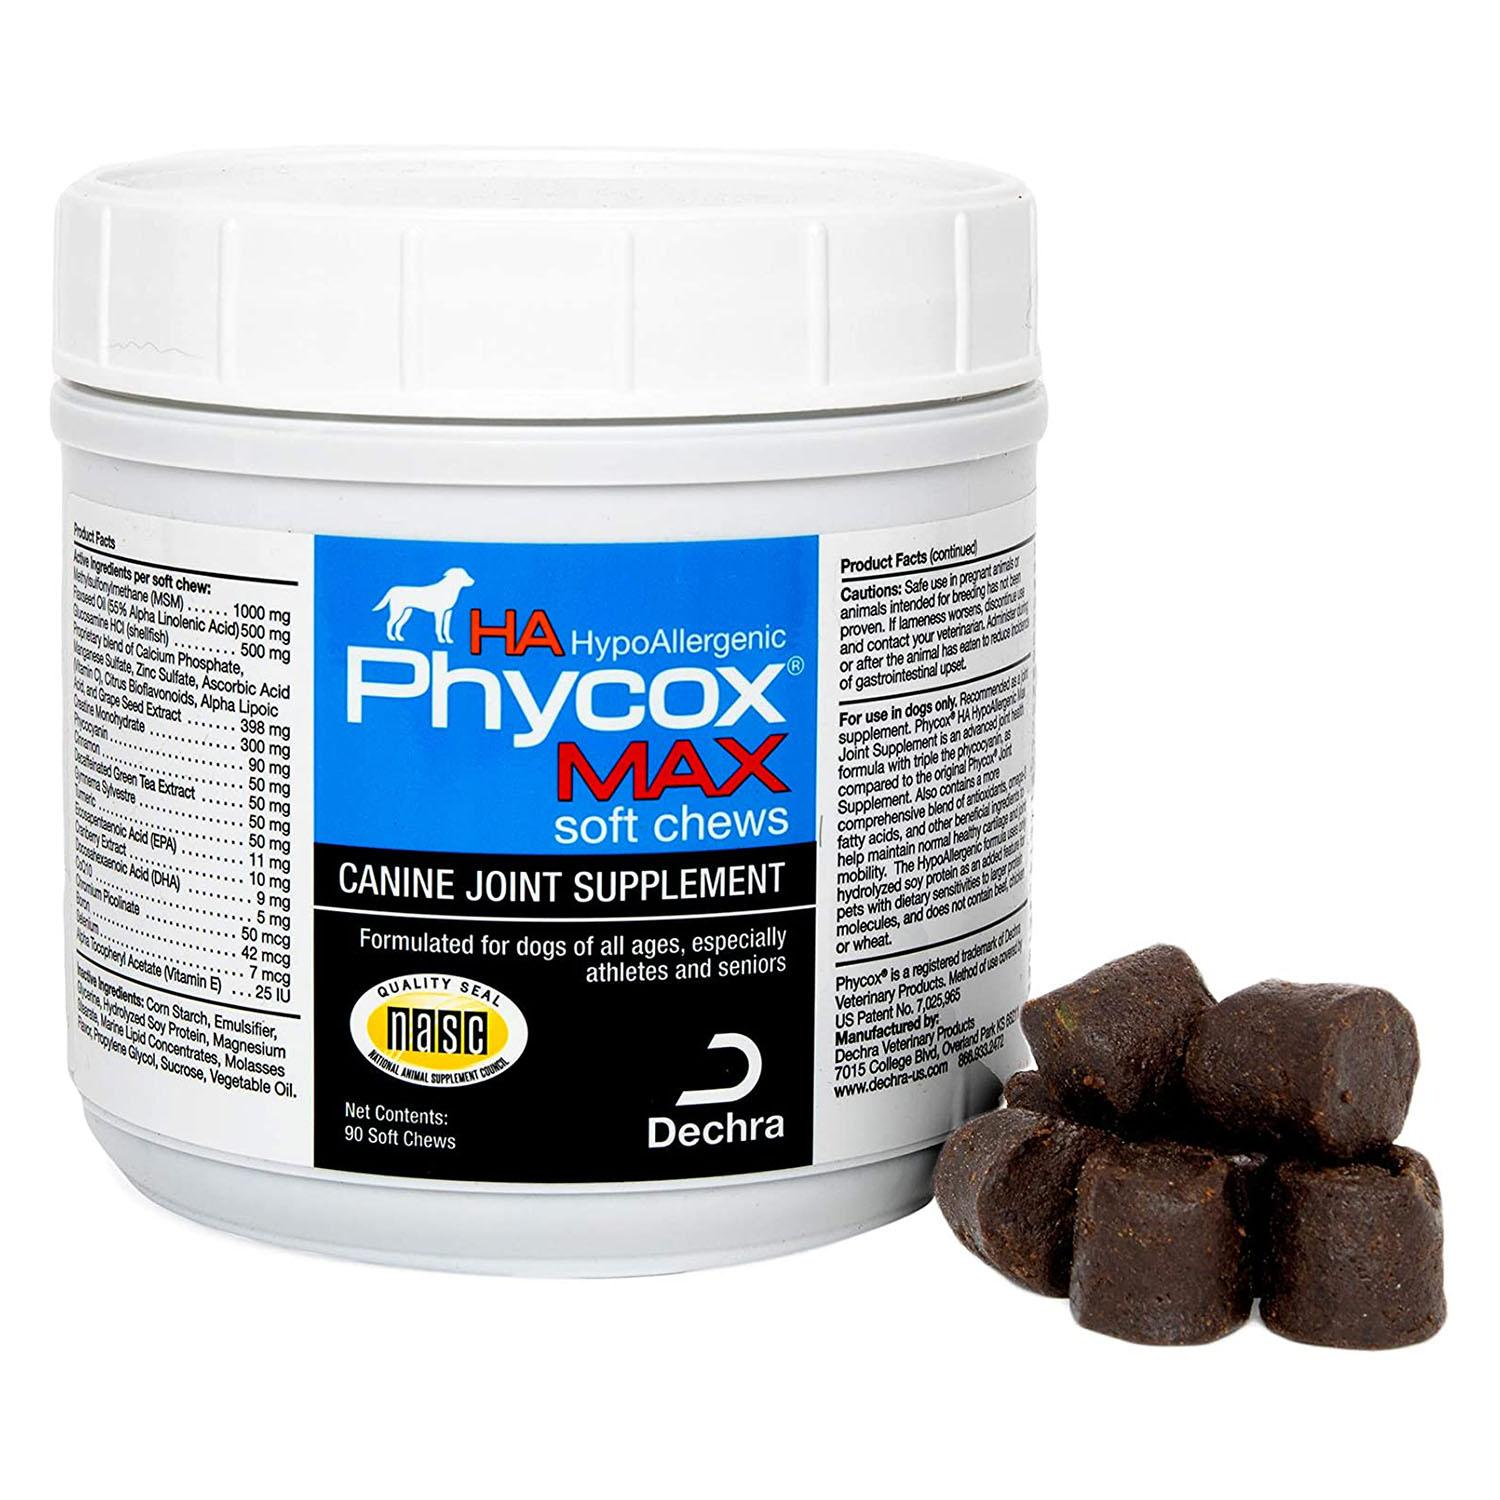 Dechra Phycox MAX HA Hypoallergenic Soft Chews Canine Joint Supplement